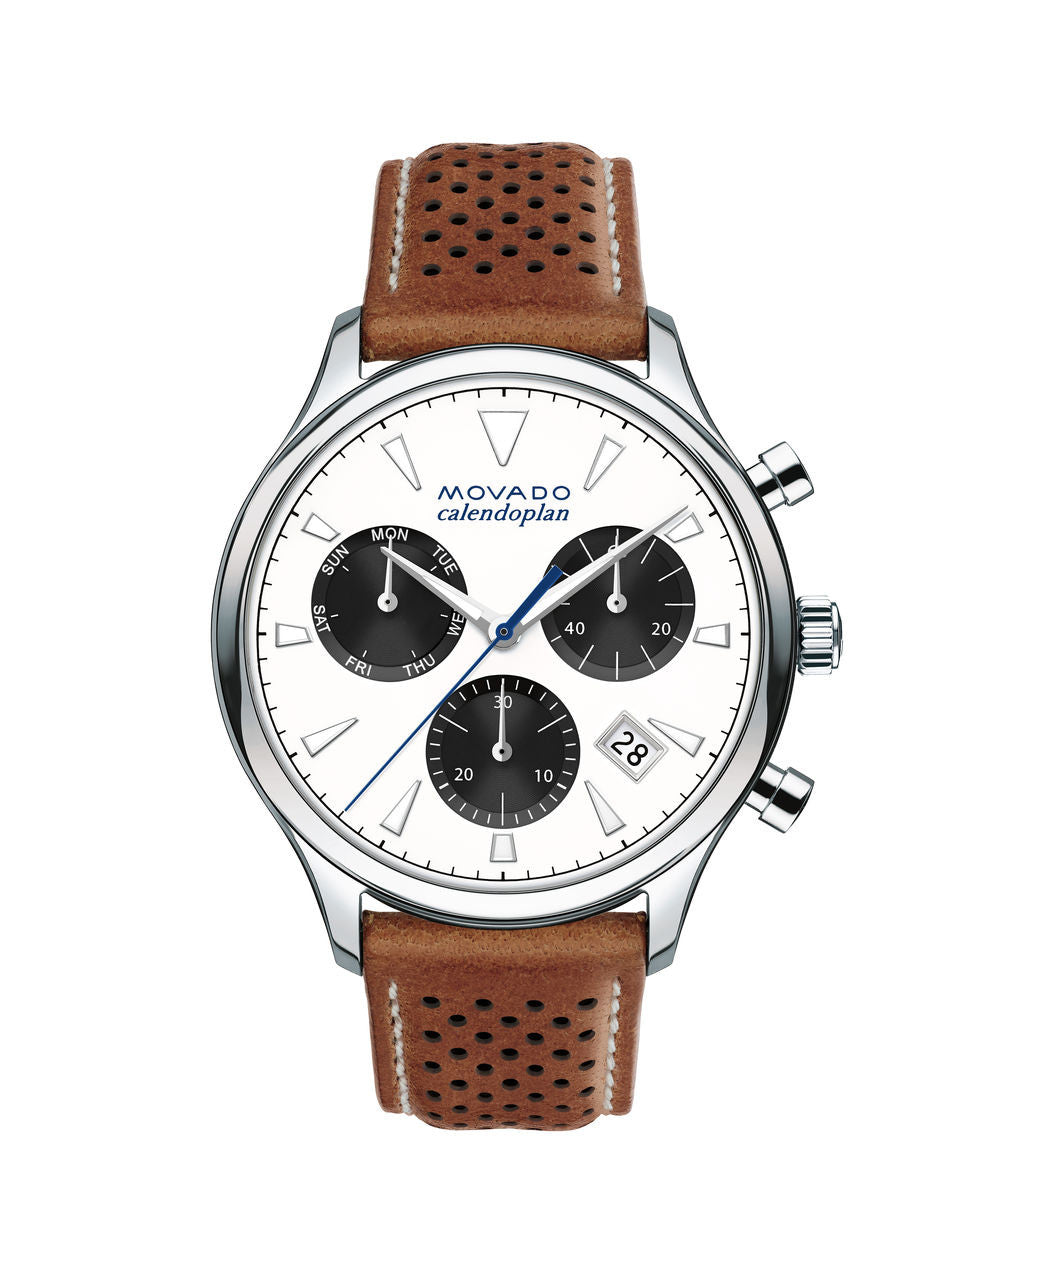 Movado Heritage Series Calendoplan Chronograph Watch, 43 mm Yellow Gold Ion-Plated Stainless Steel 3650008 - Arnik Jewellers